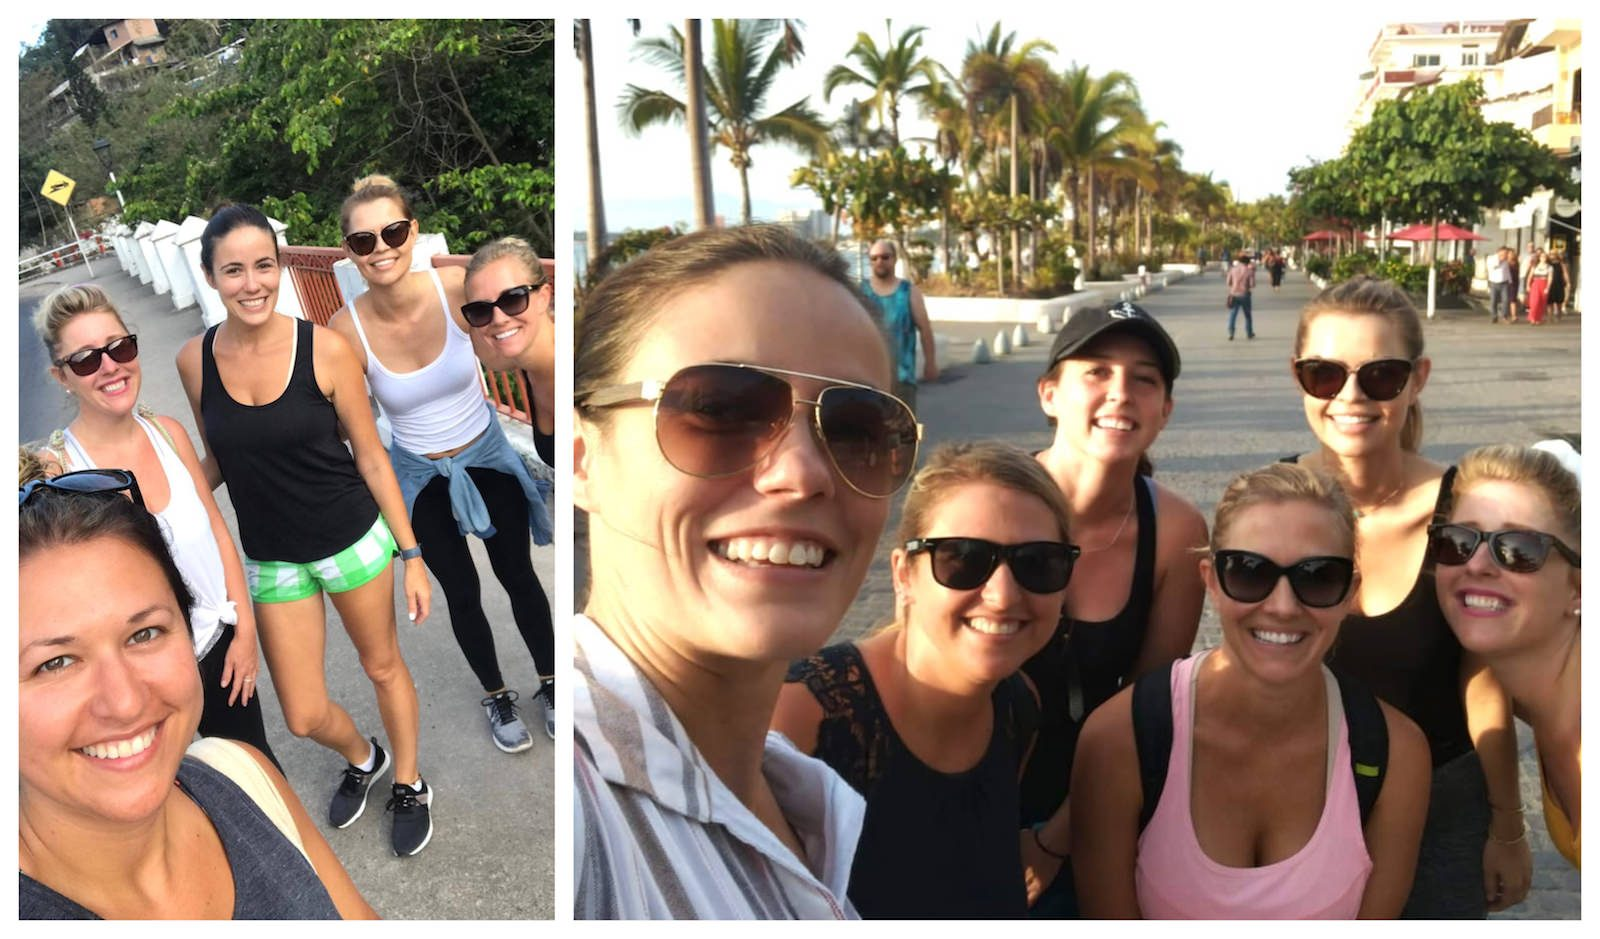 Collage of women's walking group in Puerto Vallarta